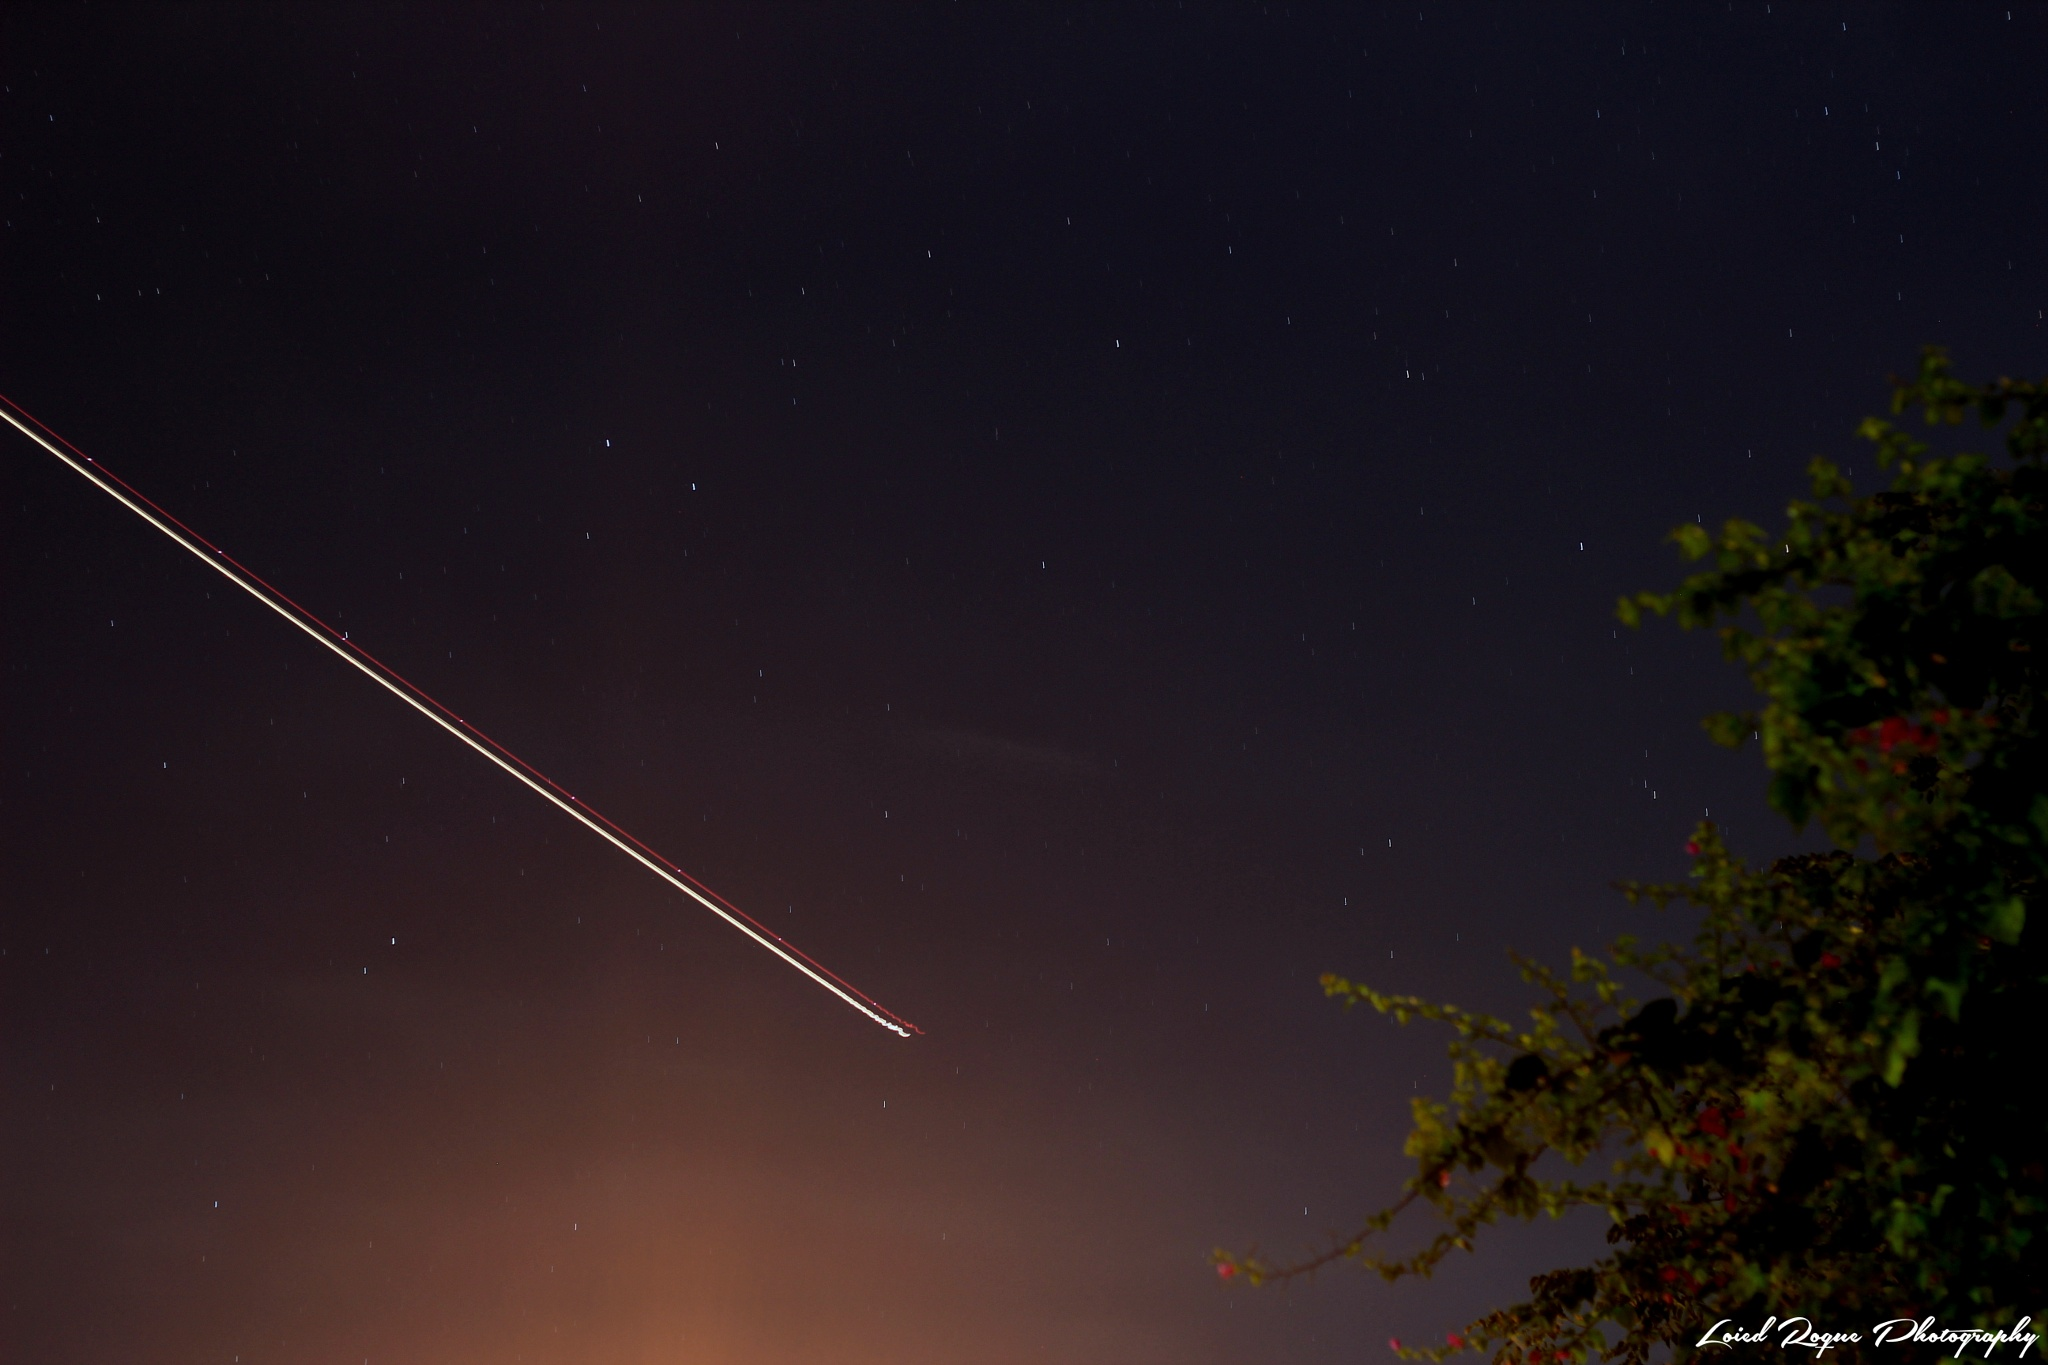 Night Photography. That line (Airplane long exposure). Dec 24, 2015 by Loied Roque